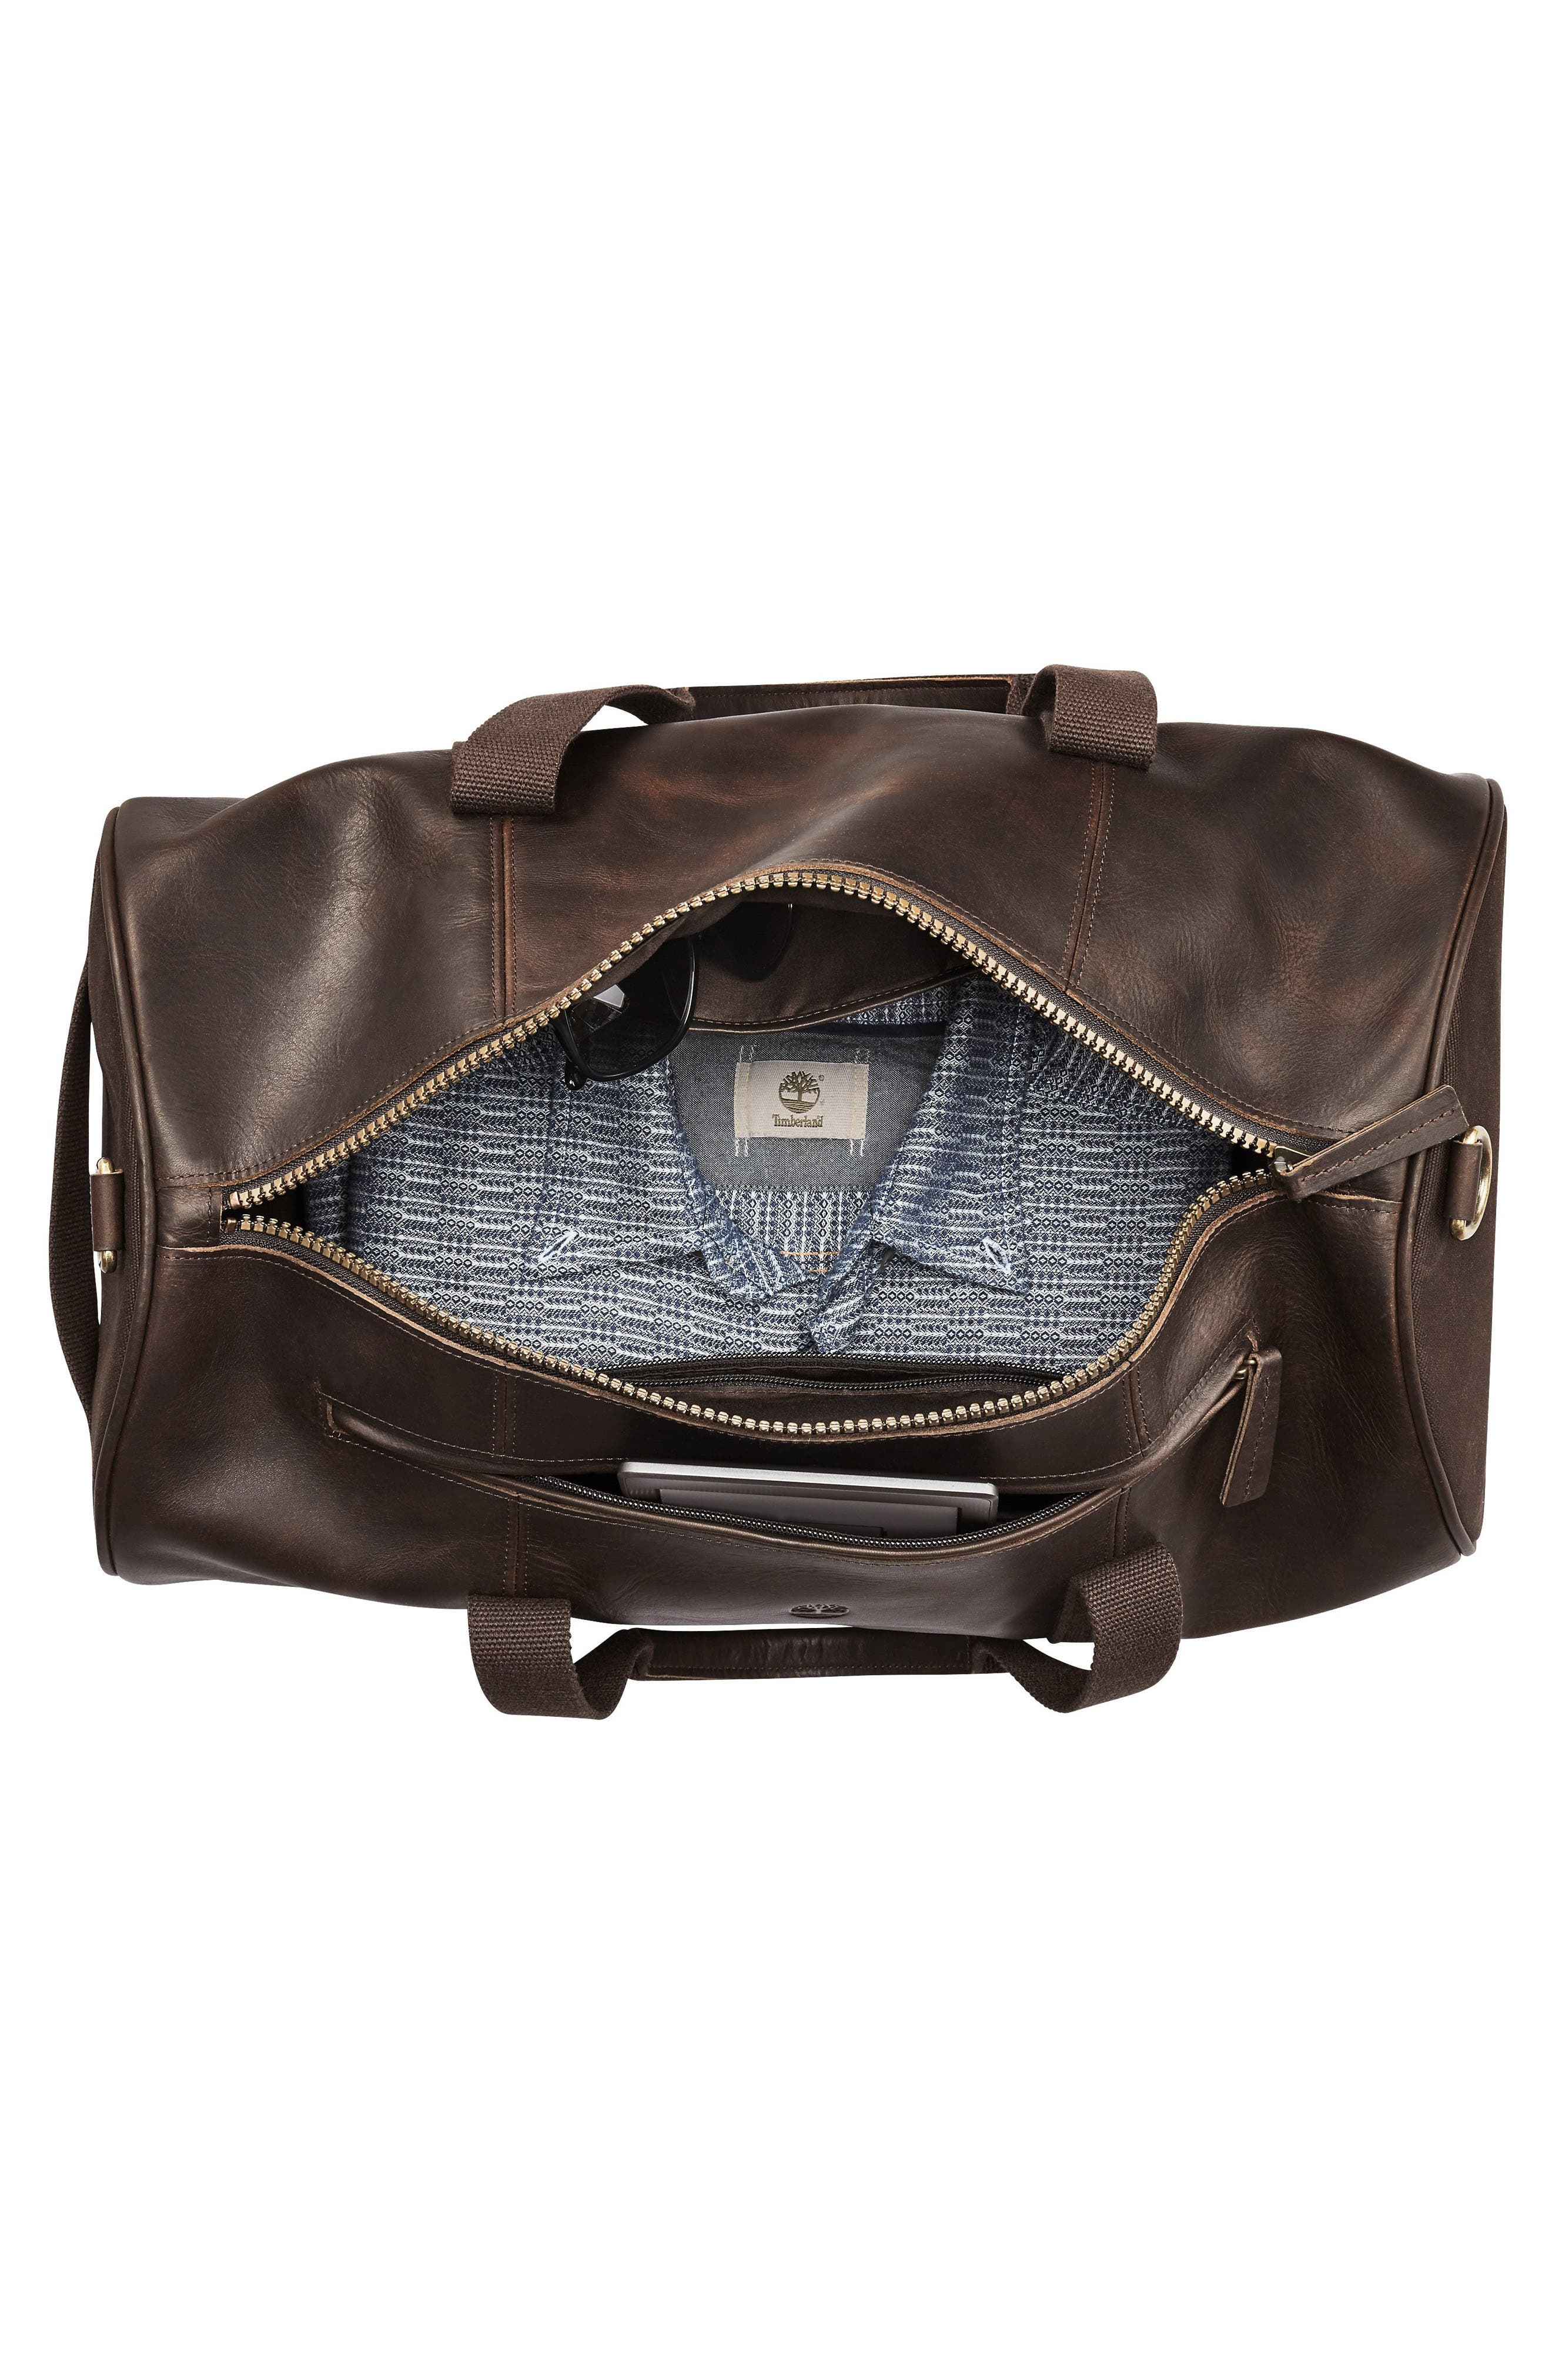 Tuckerman Leather Duffel,                             Alternate thumbnail 3, color,                             DARK BROWN